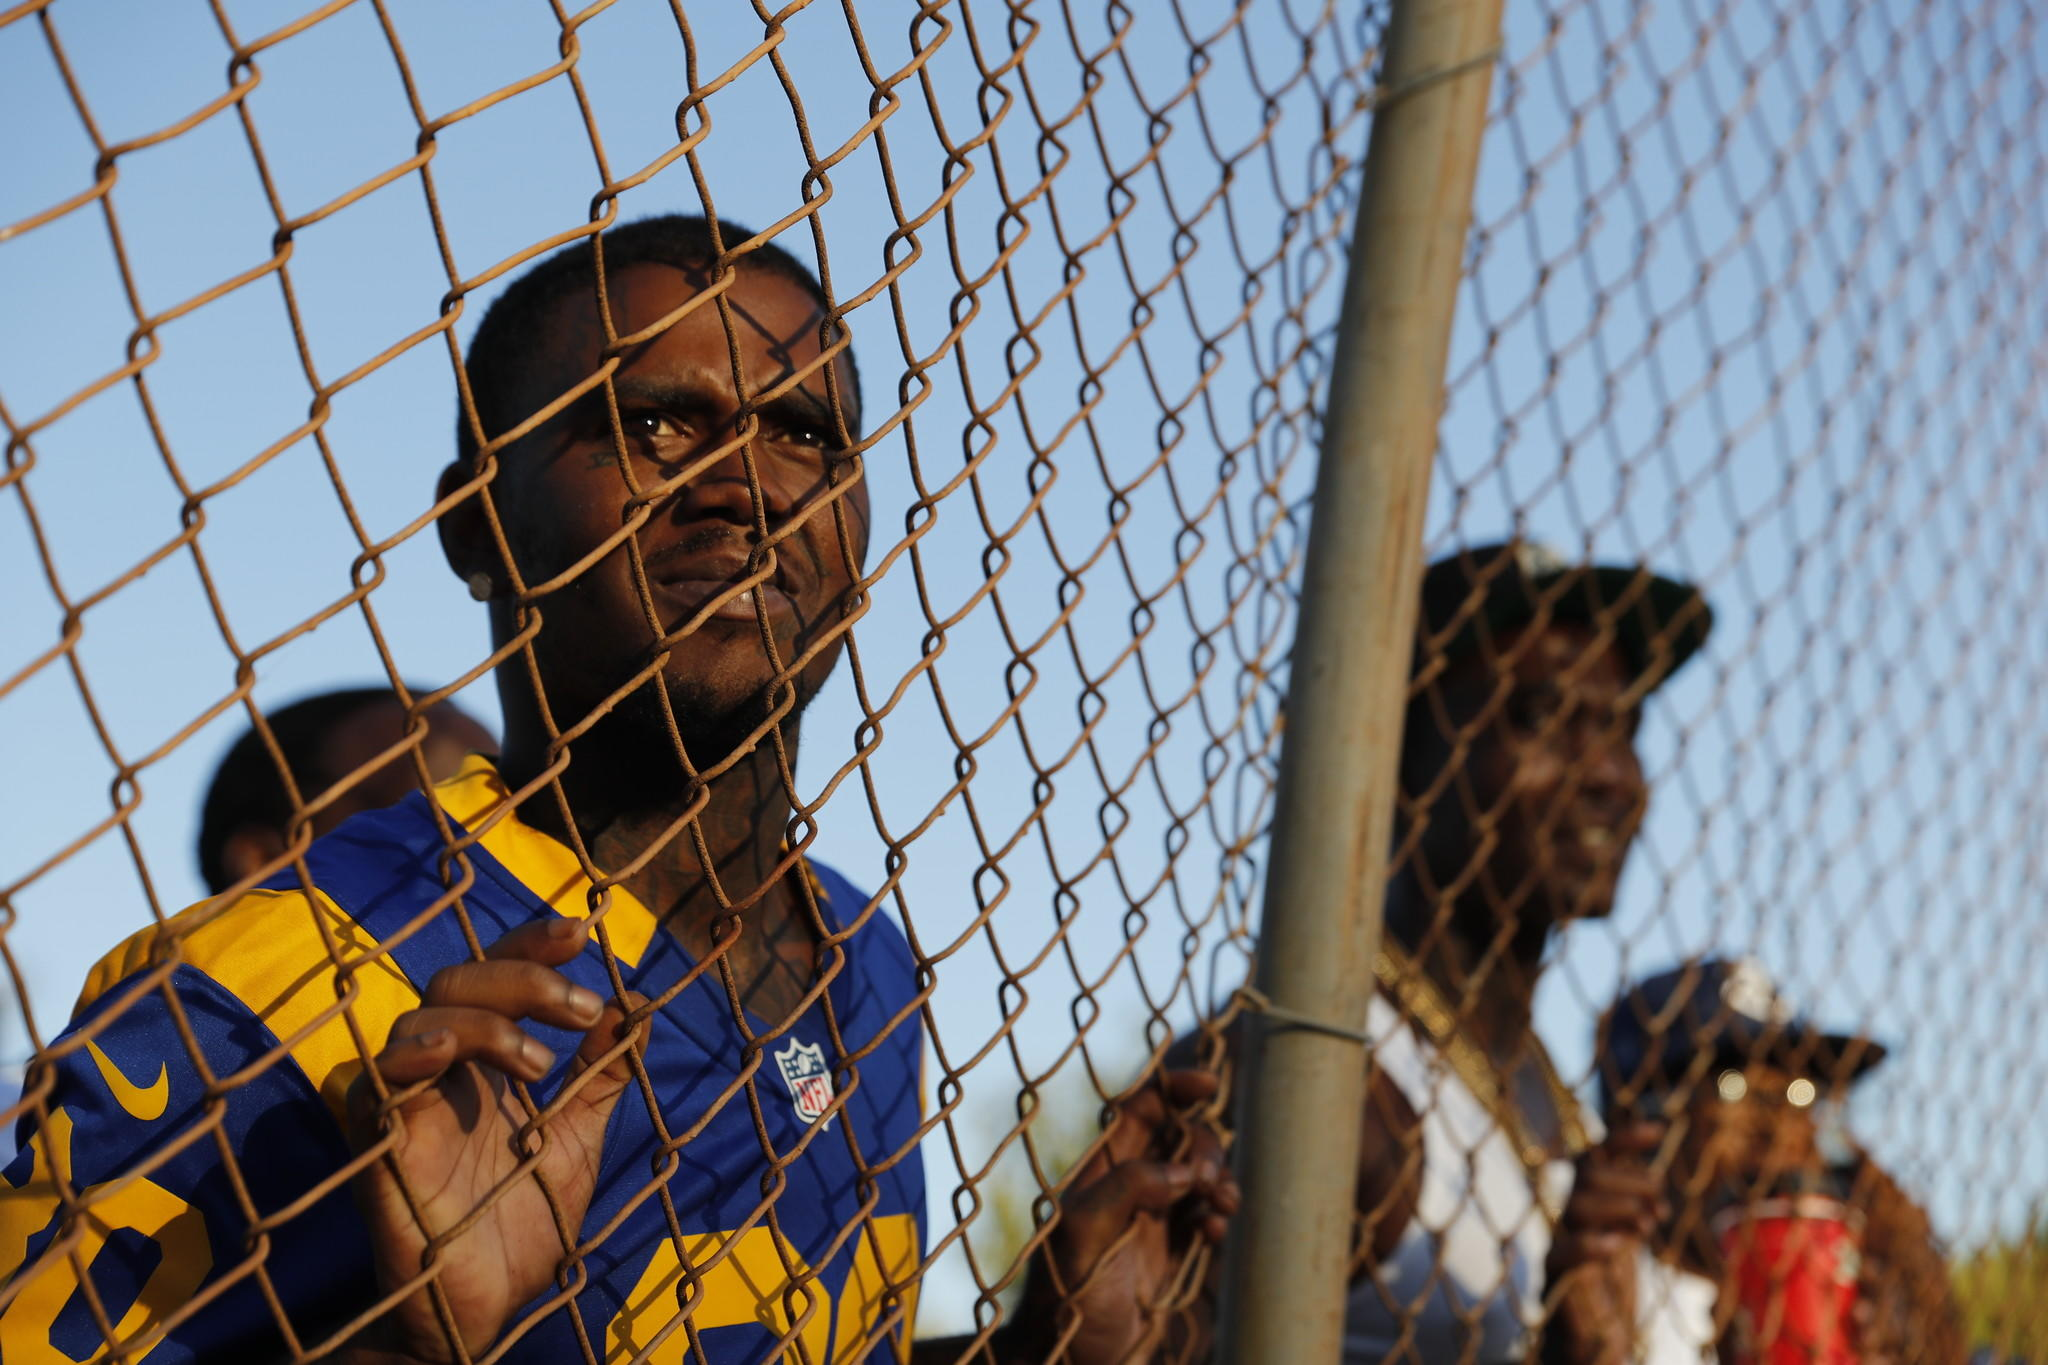 Crips make peace on the softball field - Los Angeles Times